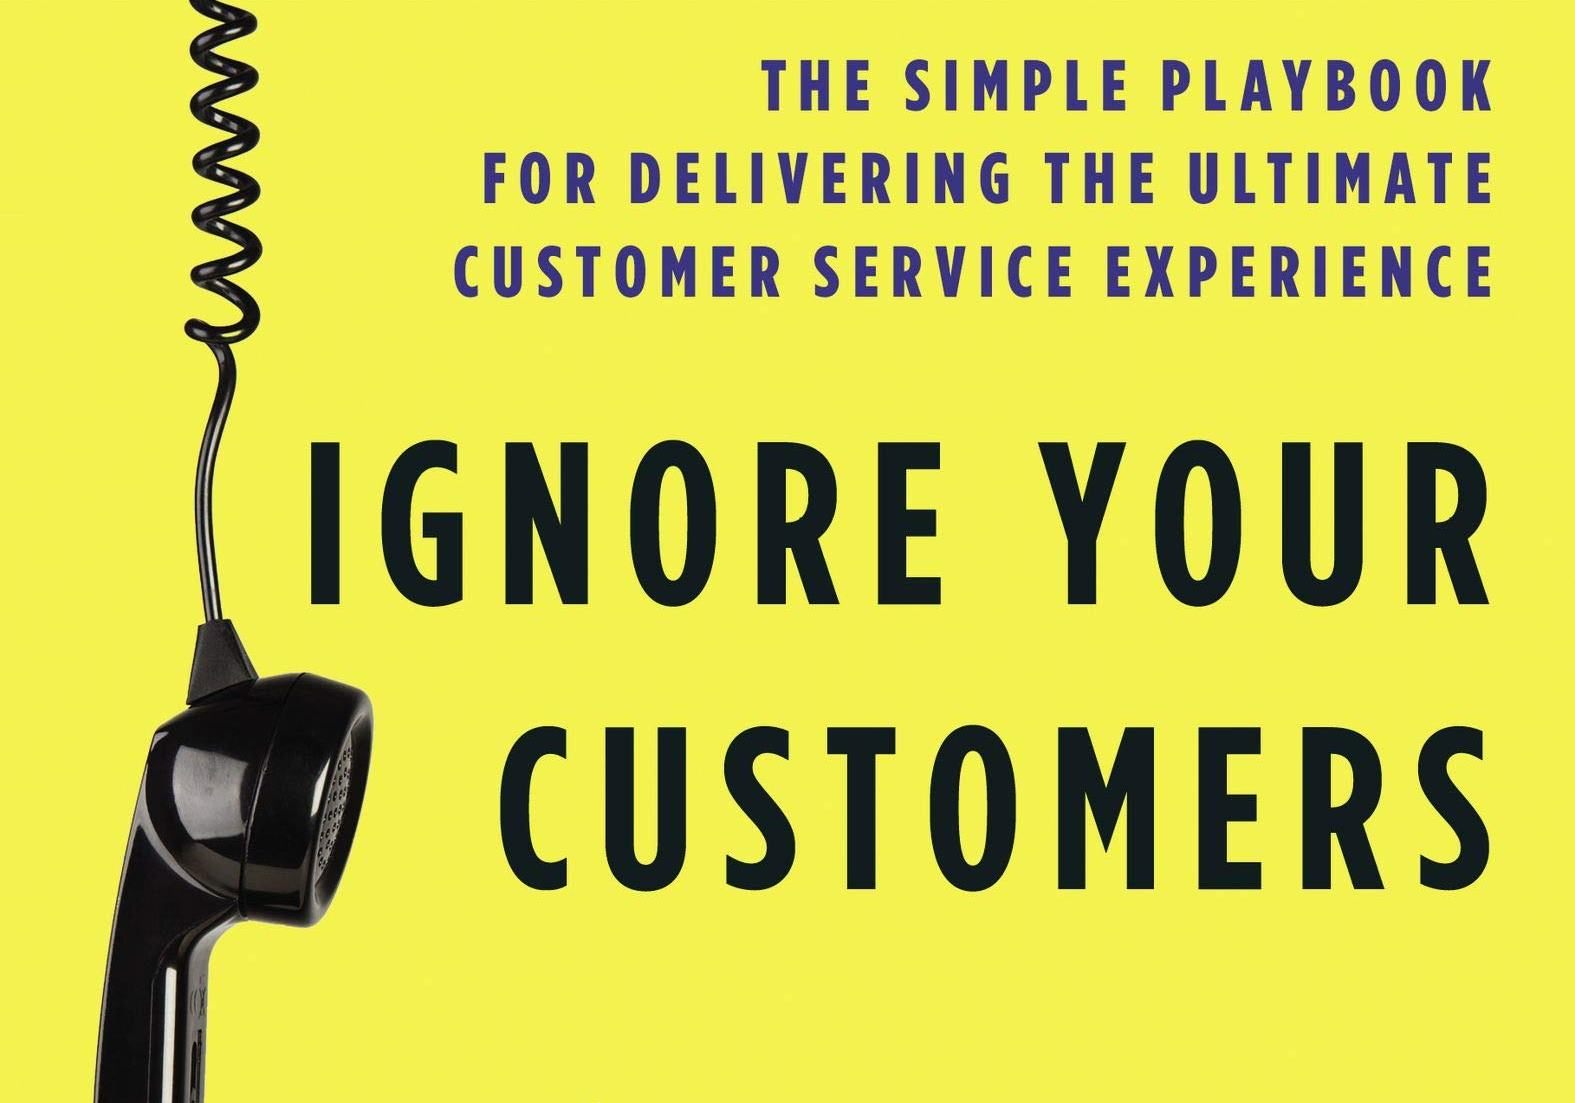 Ignore Your Customers And They'll Go Away